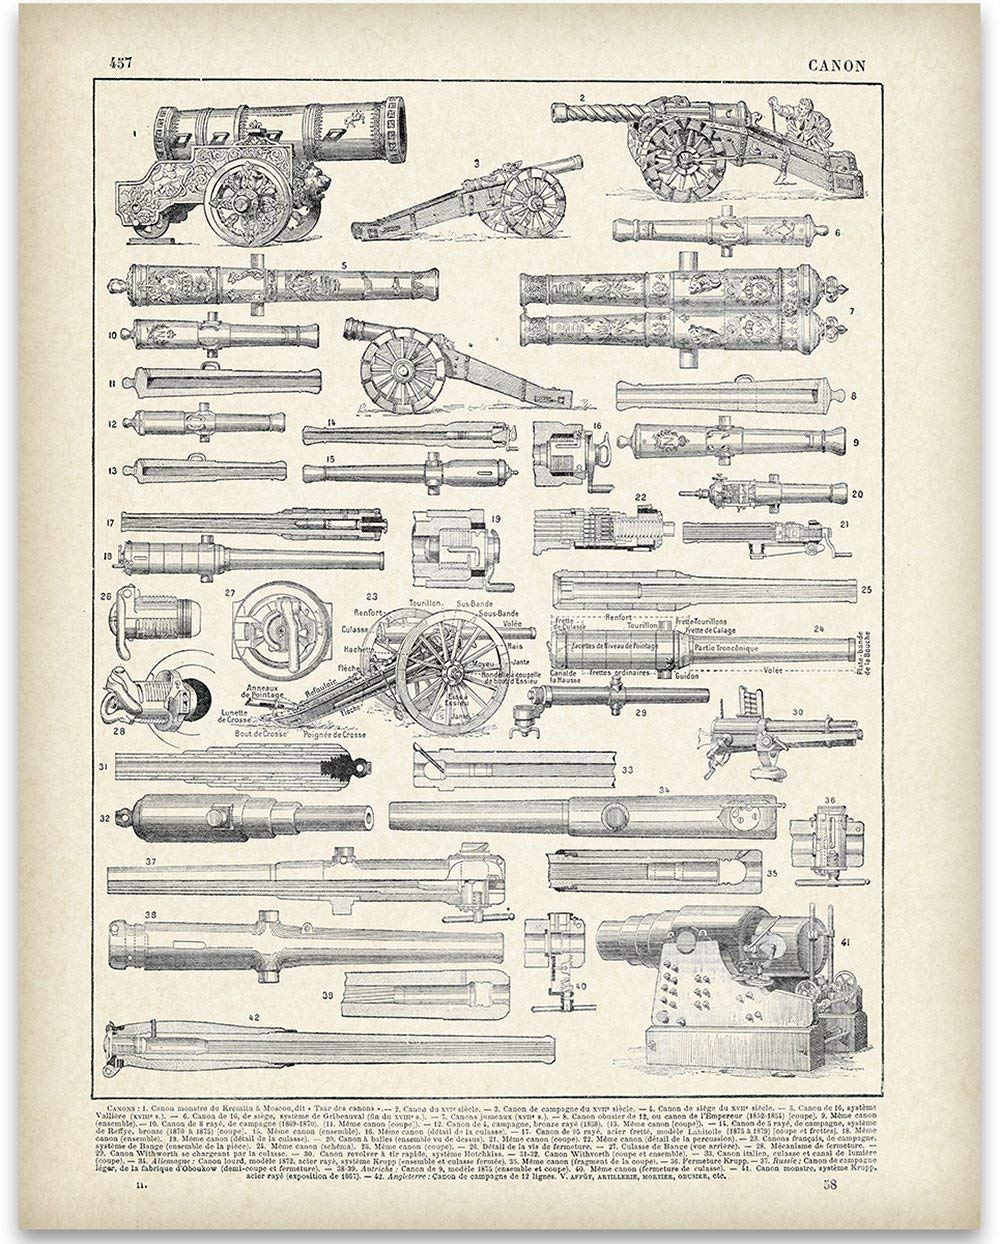 French Cannon Illustration - 11x14 Unframed Art Print - Perfect Home Decor